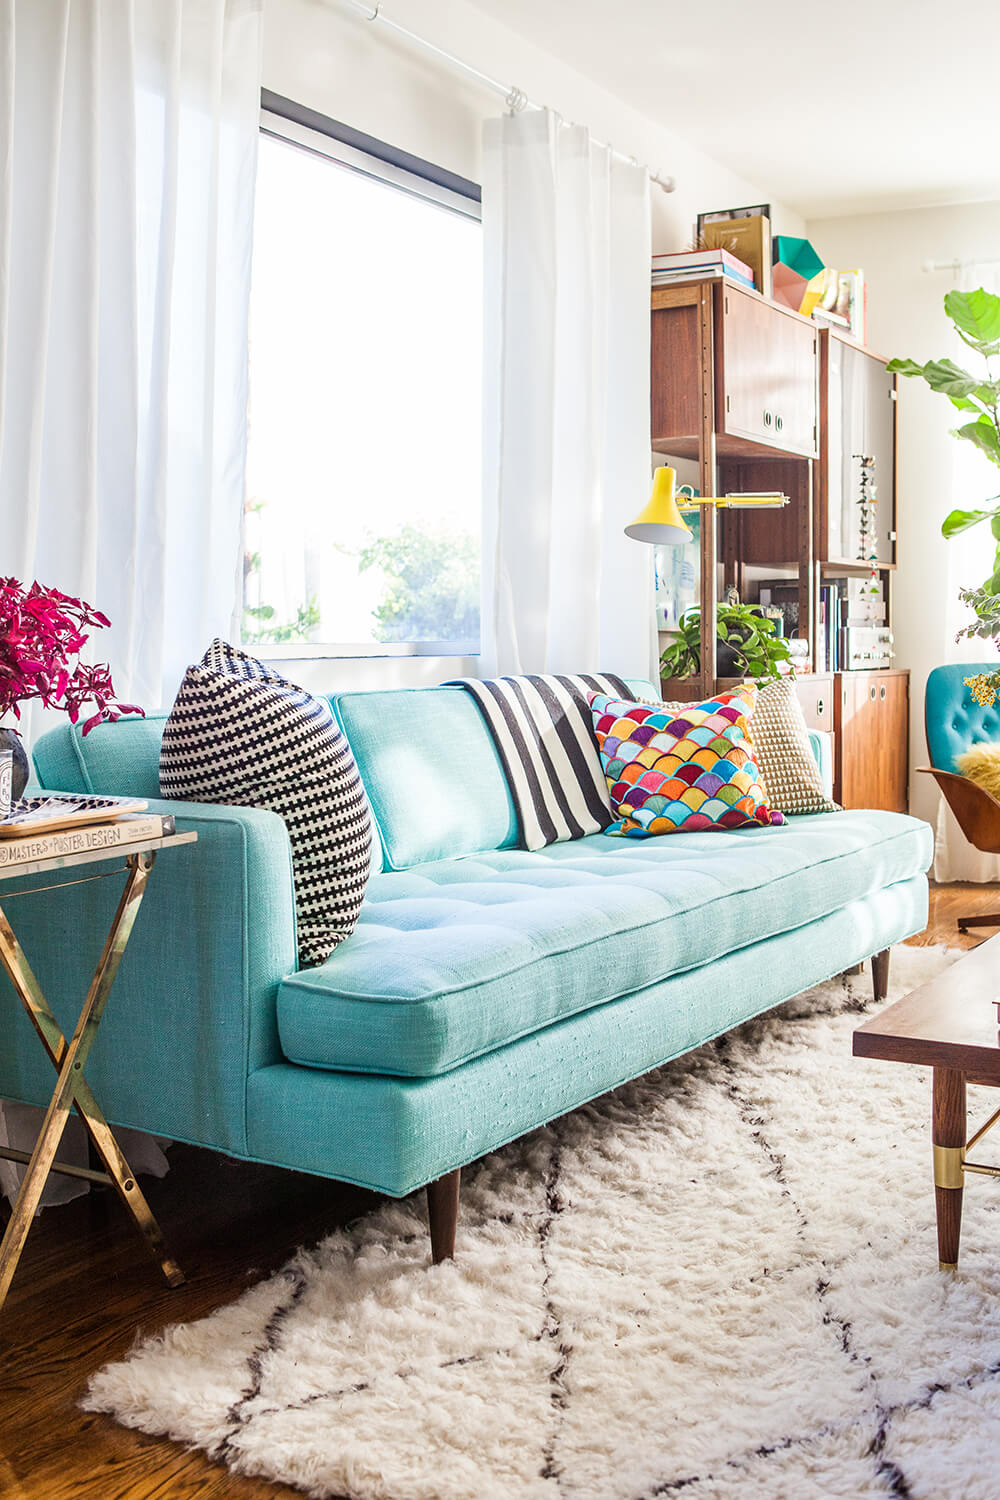 affordable sofas 84 affordable amazing sofas under $1000 ELUSWDZ